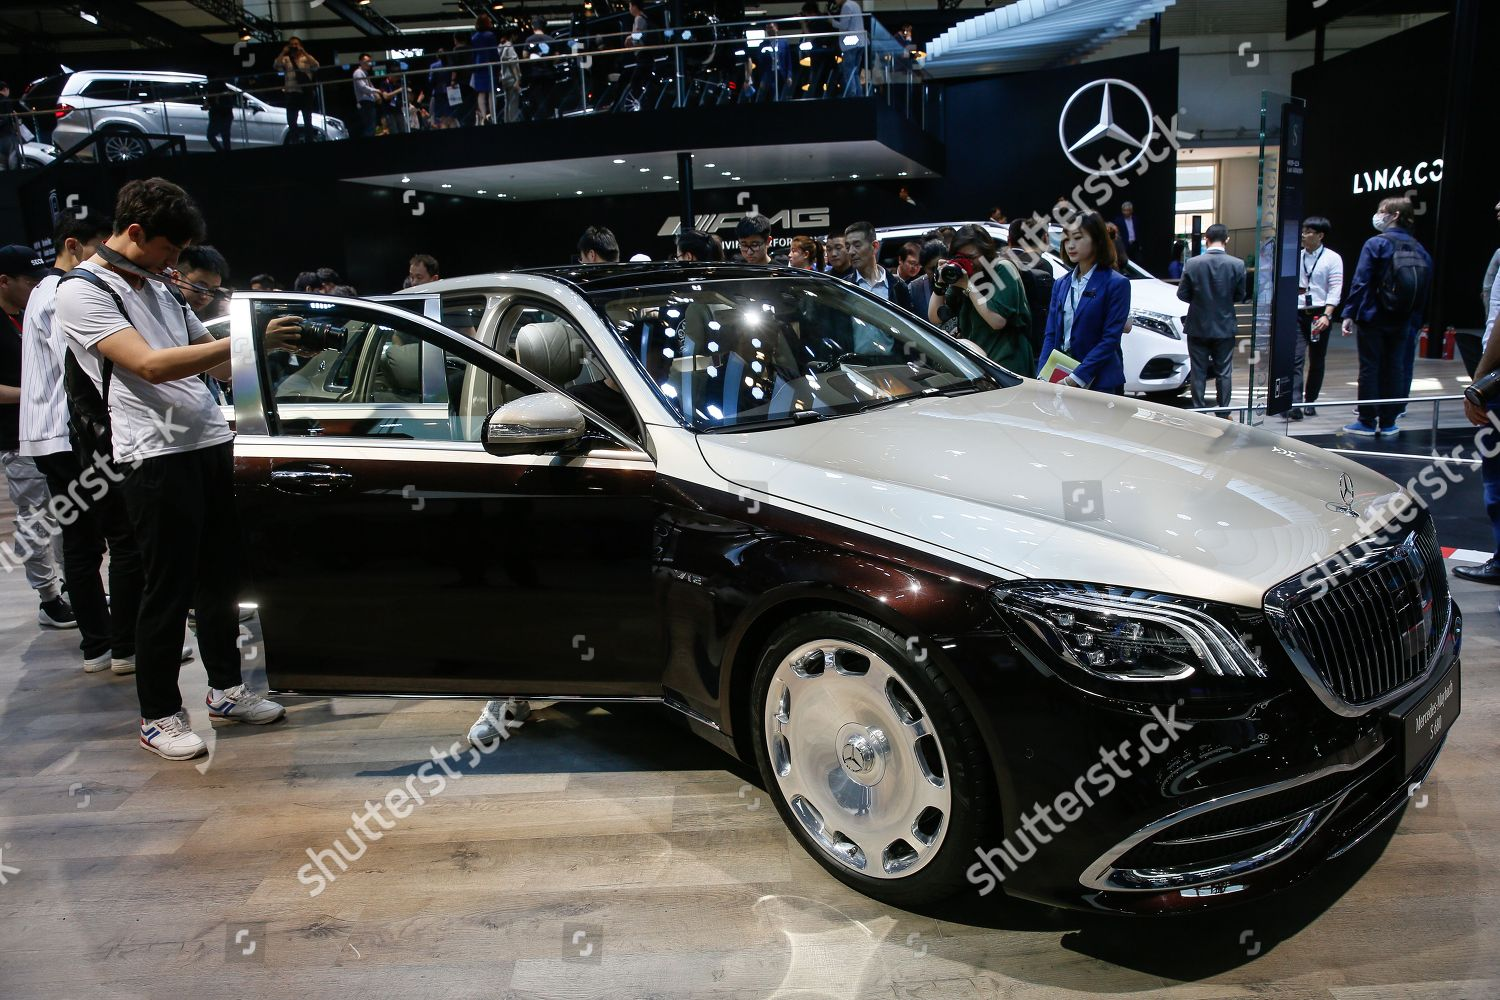 editorial stock photo of new mercedes maybach s680 car on display